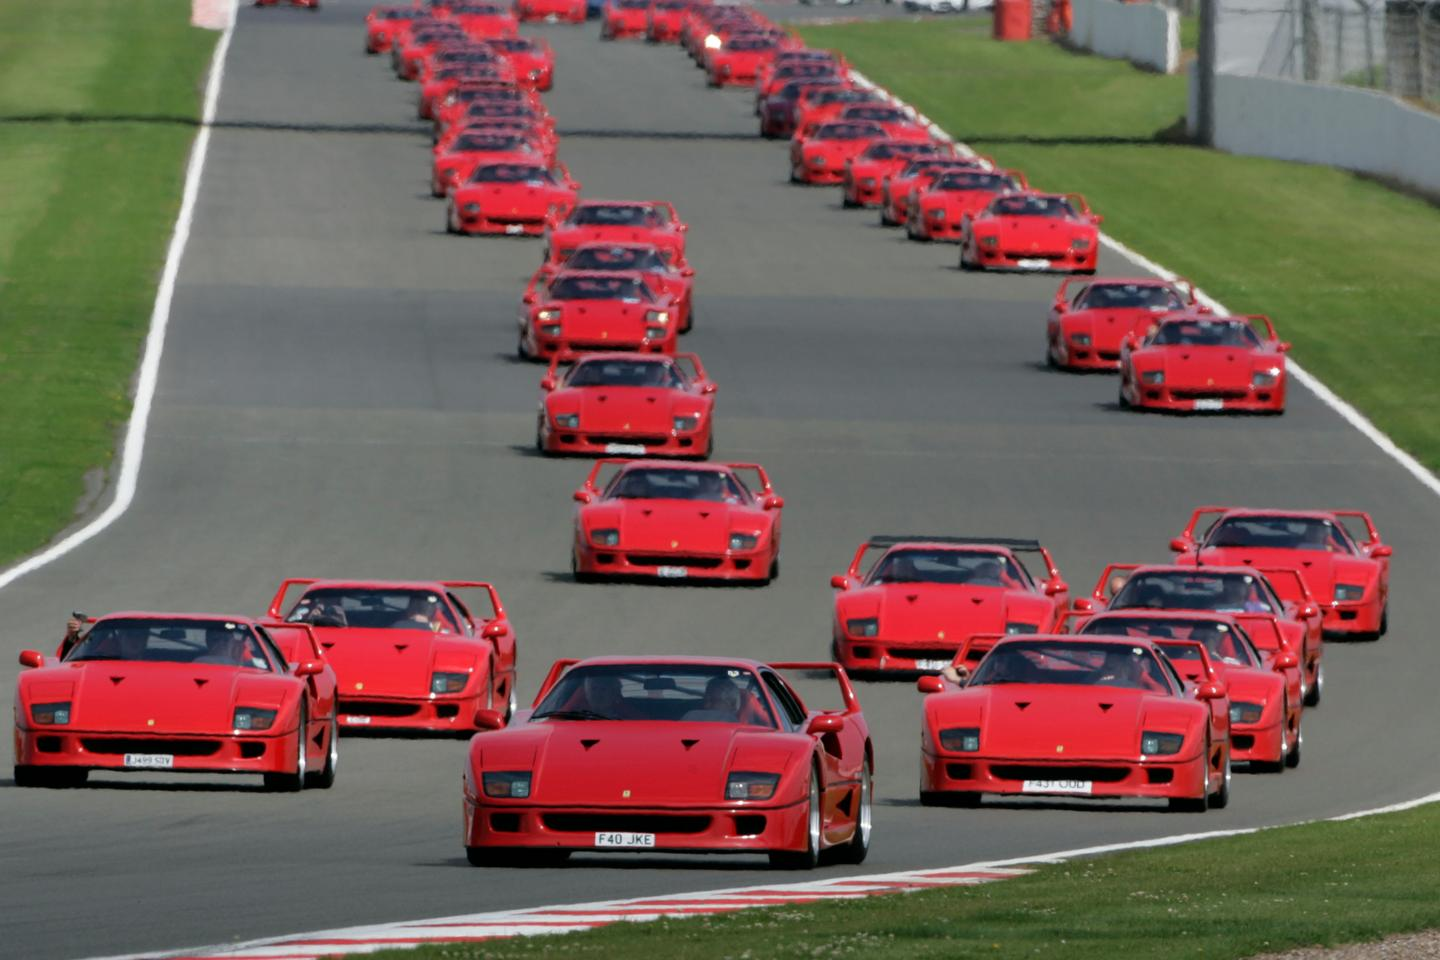 The collection of 60 F40s make their way around the Silverstone circuit on the weekend